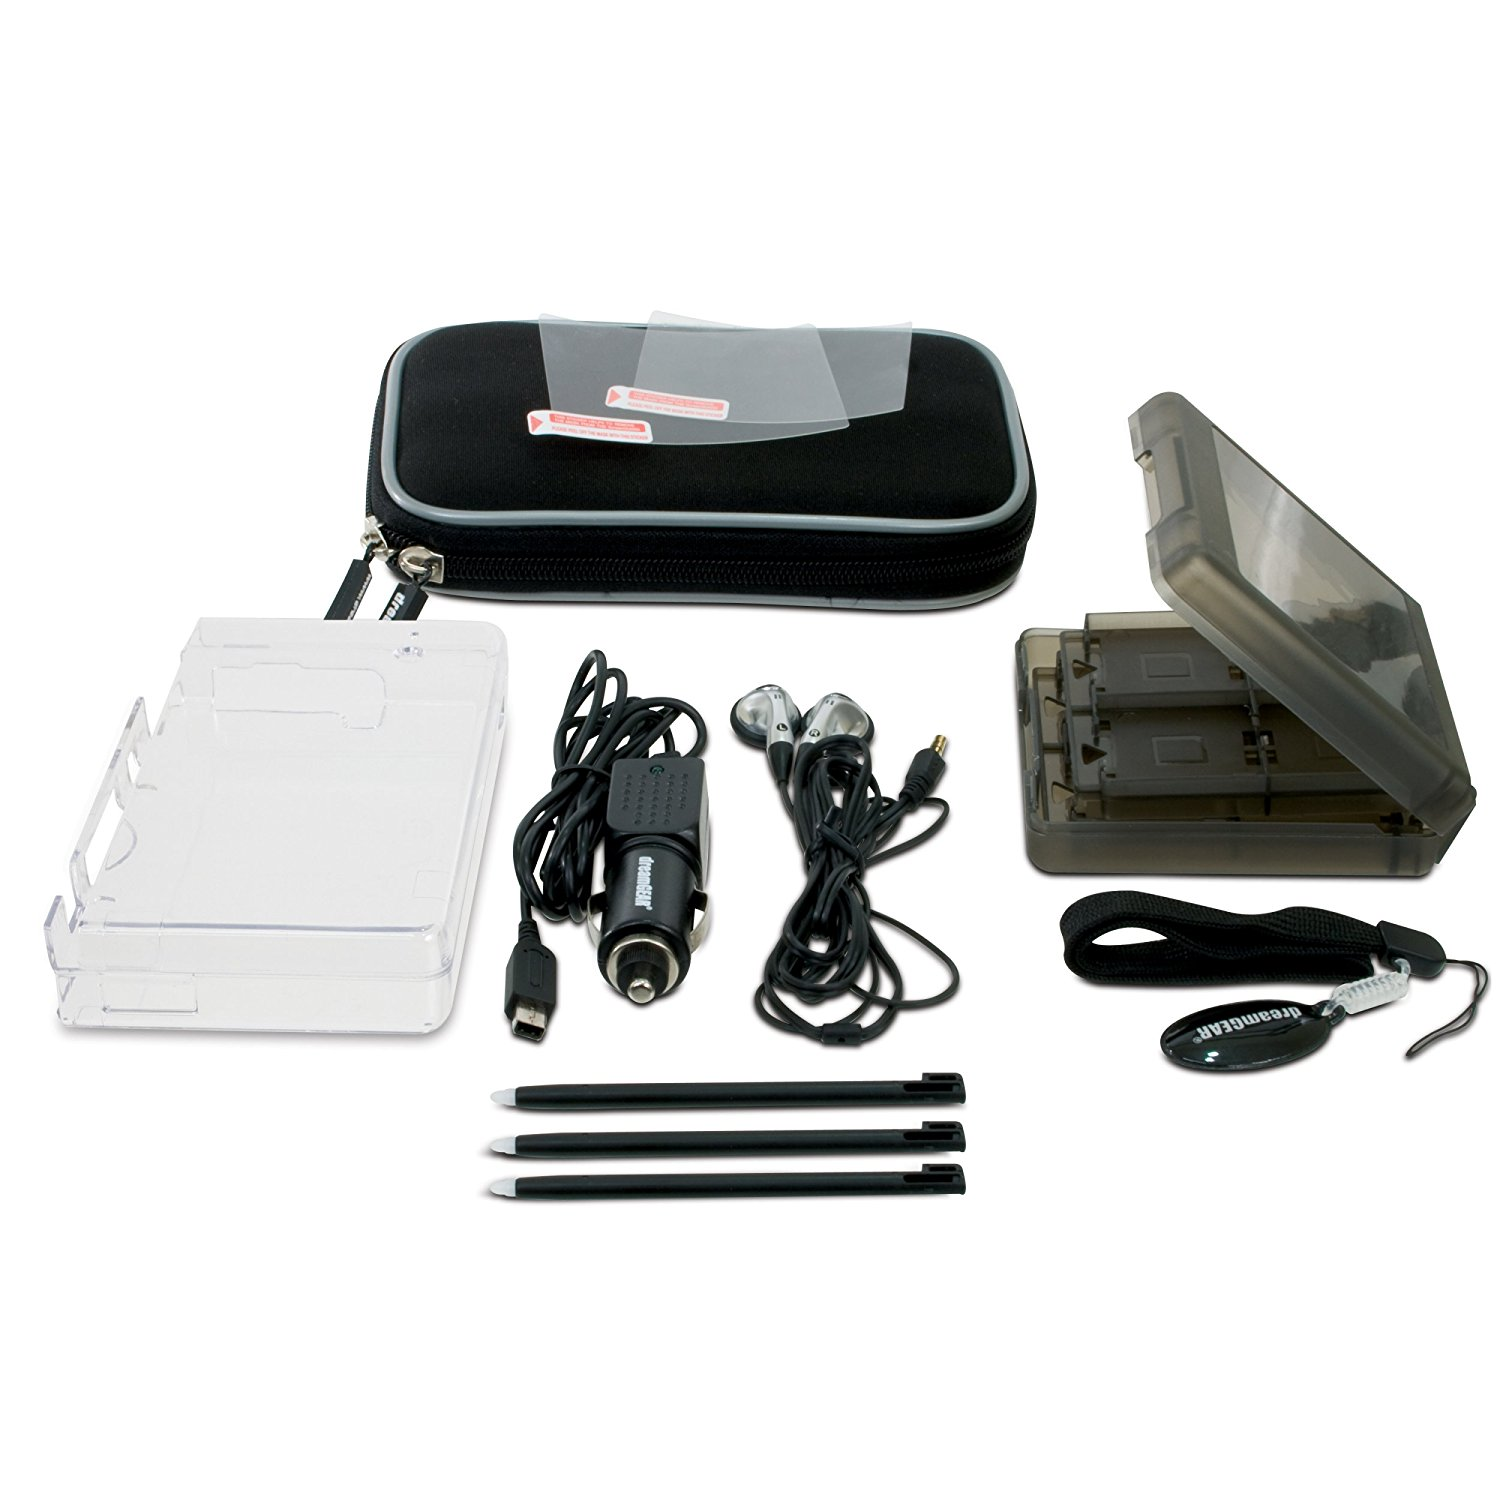 DSi 10-in-1 Starter Kit Black by DreamGear